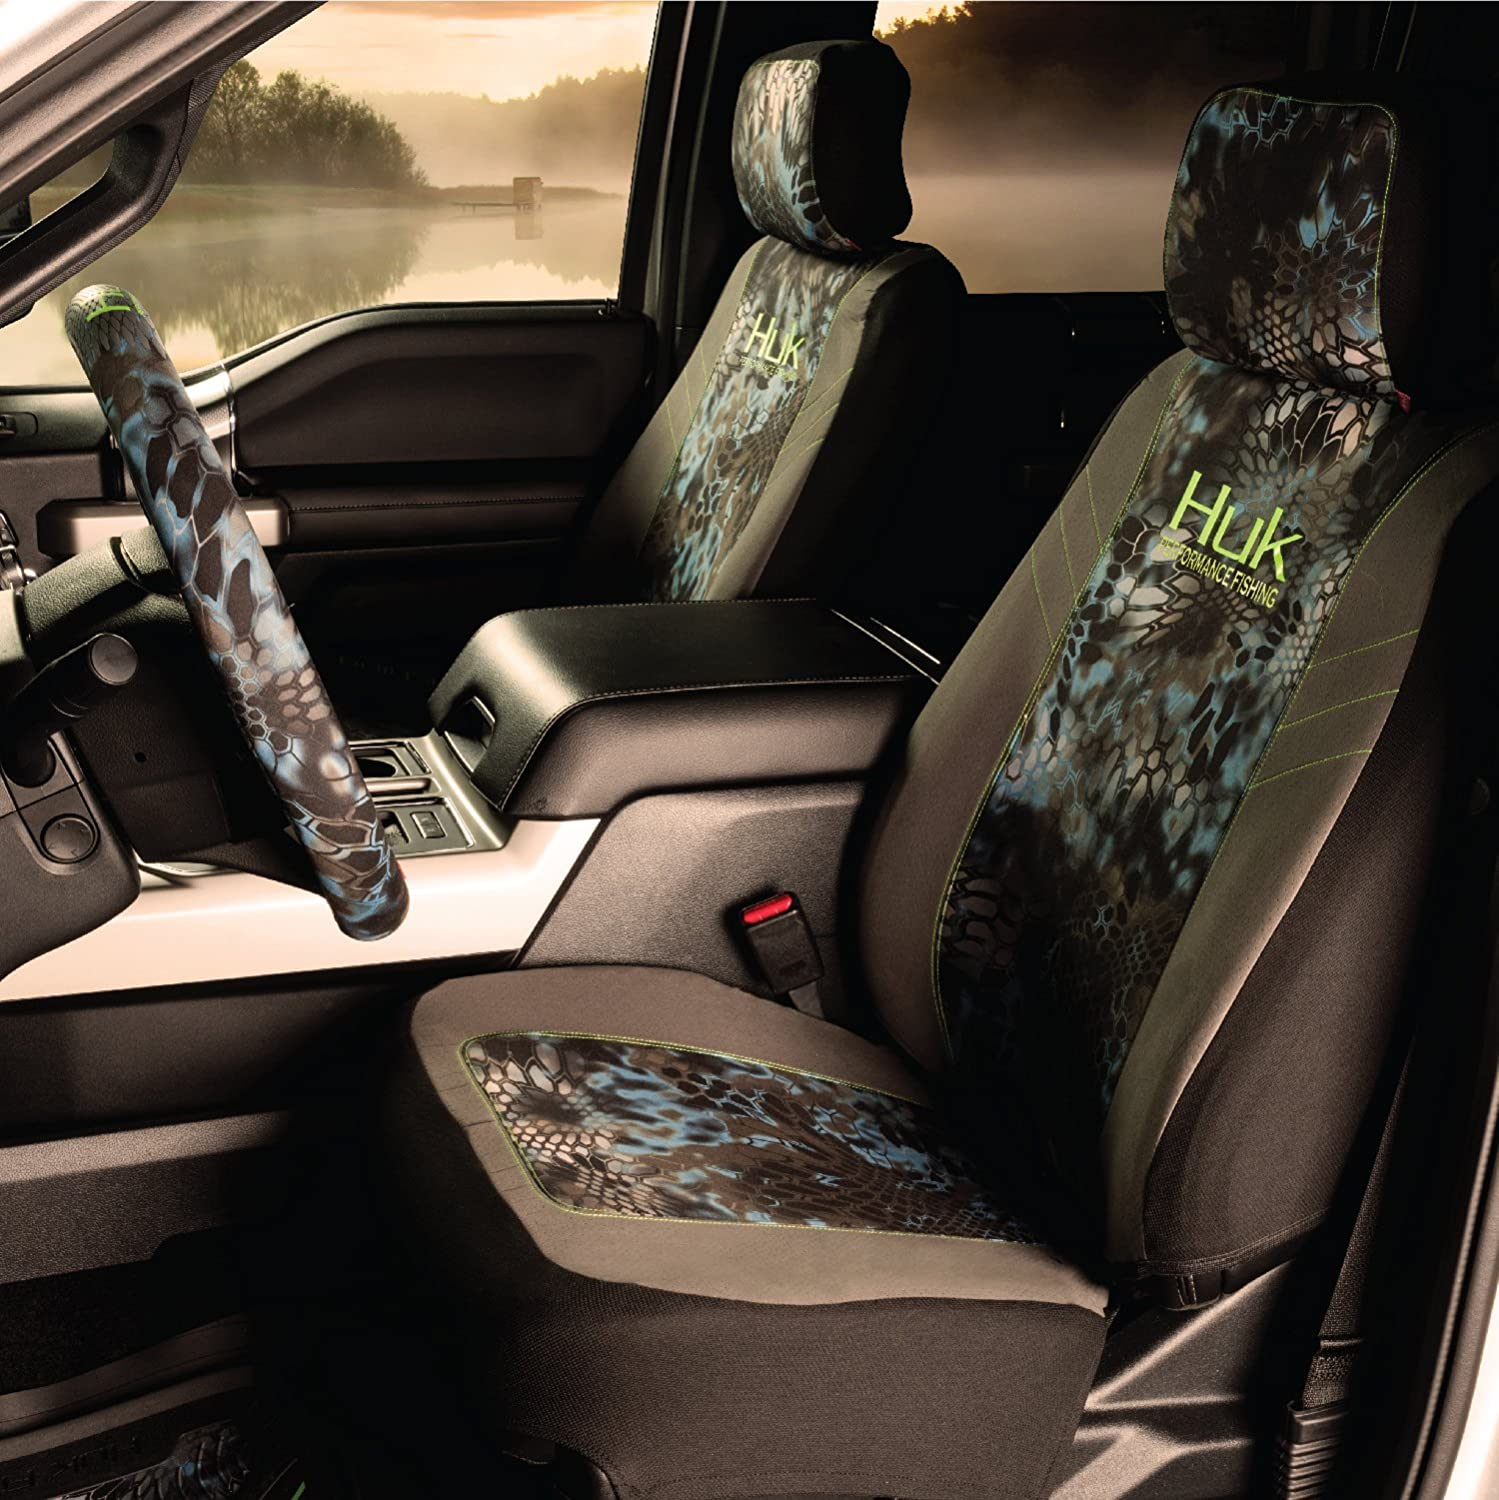 Huk Low Back Seat Cover Includes 1 Camo Seat Cover Original Fit Kryptek Neptune Camo